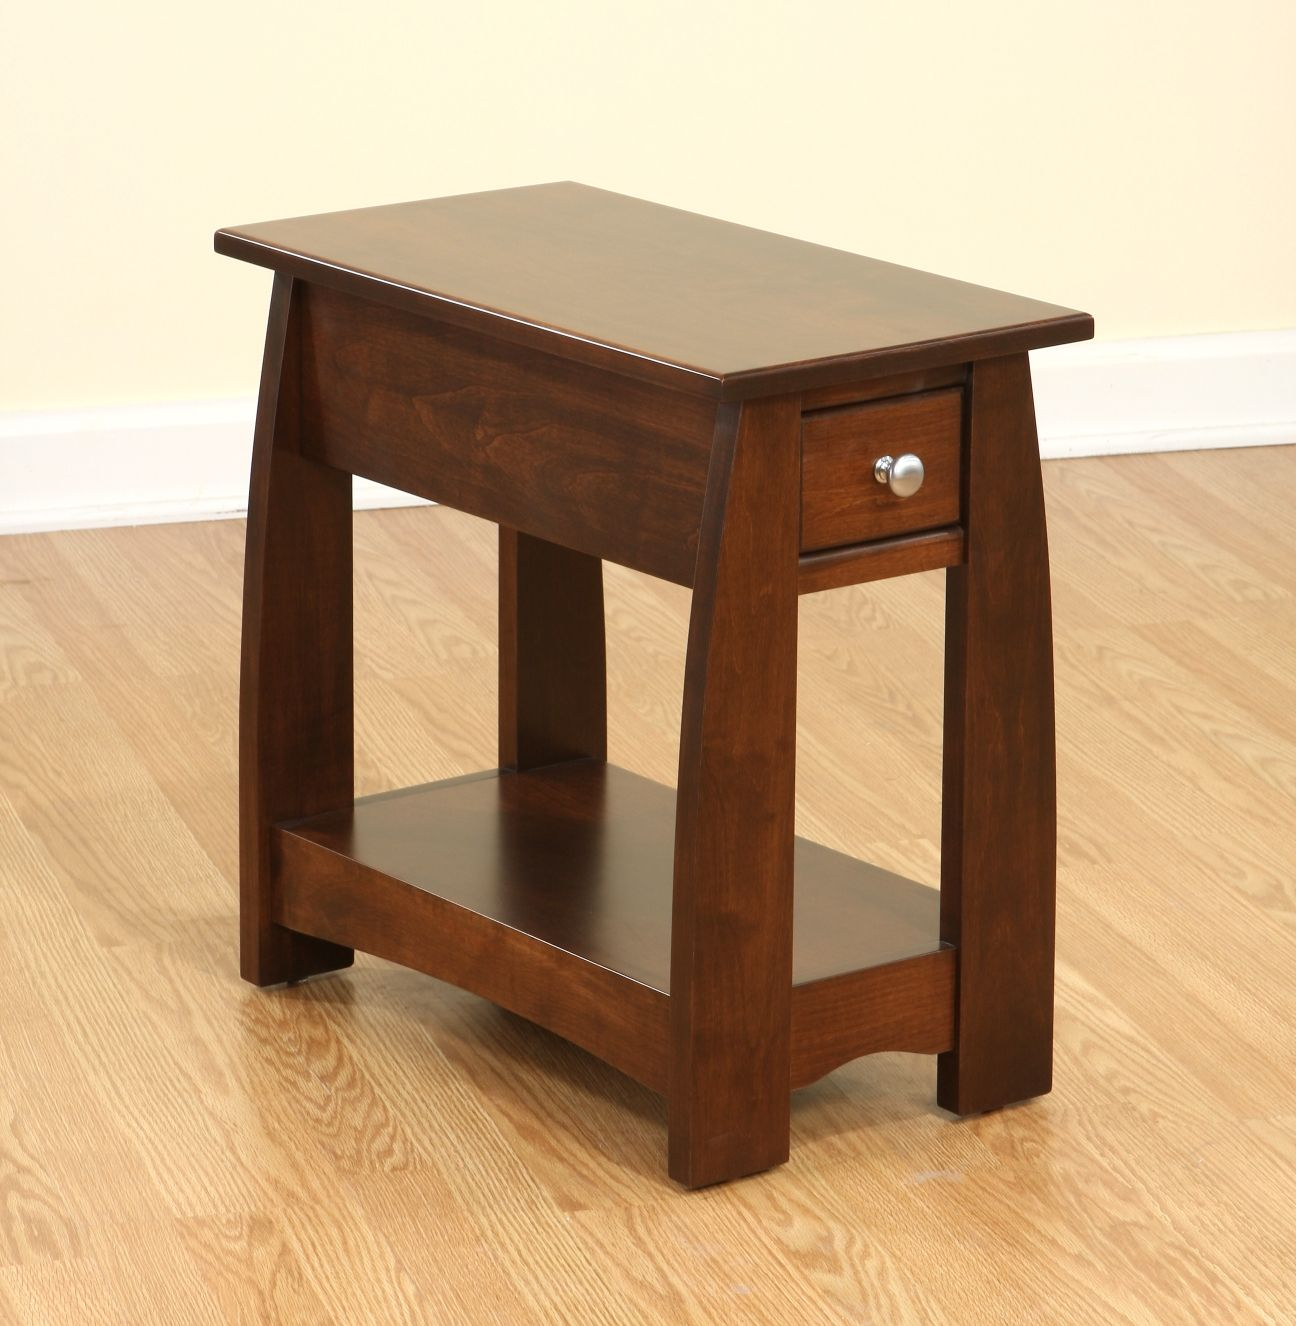 sonoma solid cherry wood narrow end table amish furniture small mission shaker chicago area black bear etsy farmhouse ideas for tables living room turquoise accent target desk